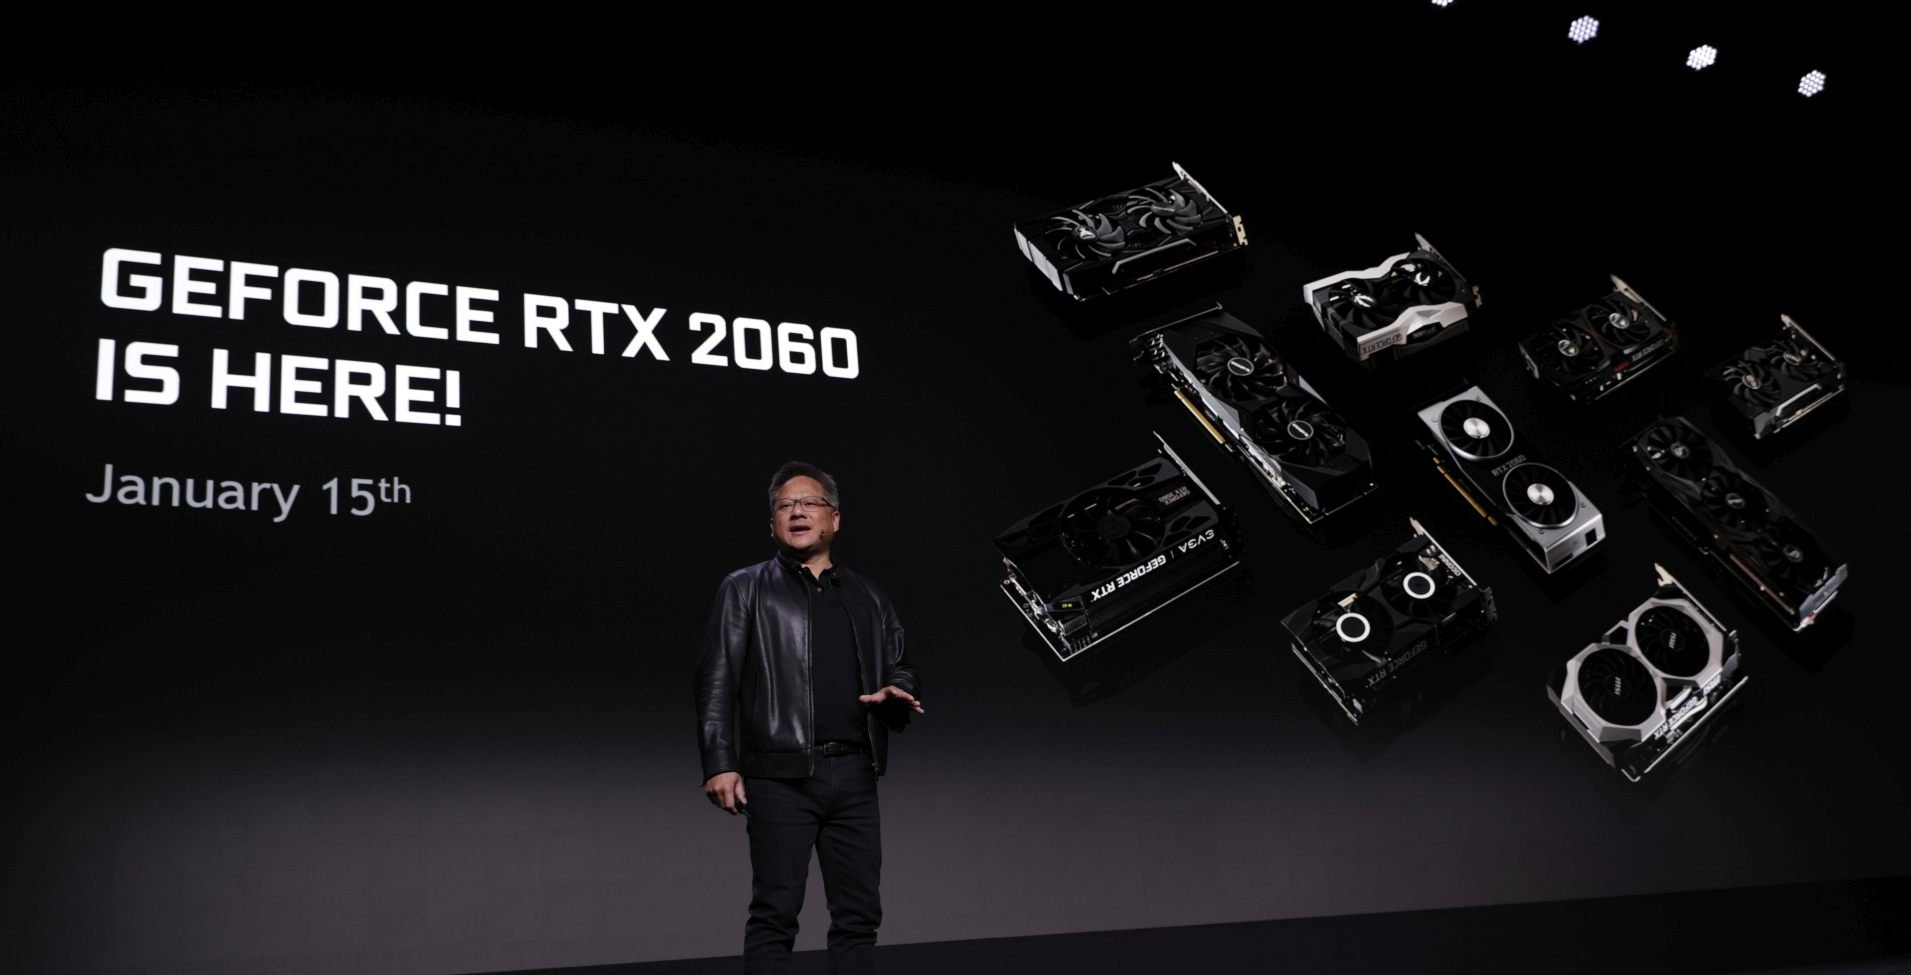 nvidia geforce rtx 2060 release date bundle price launch